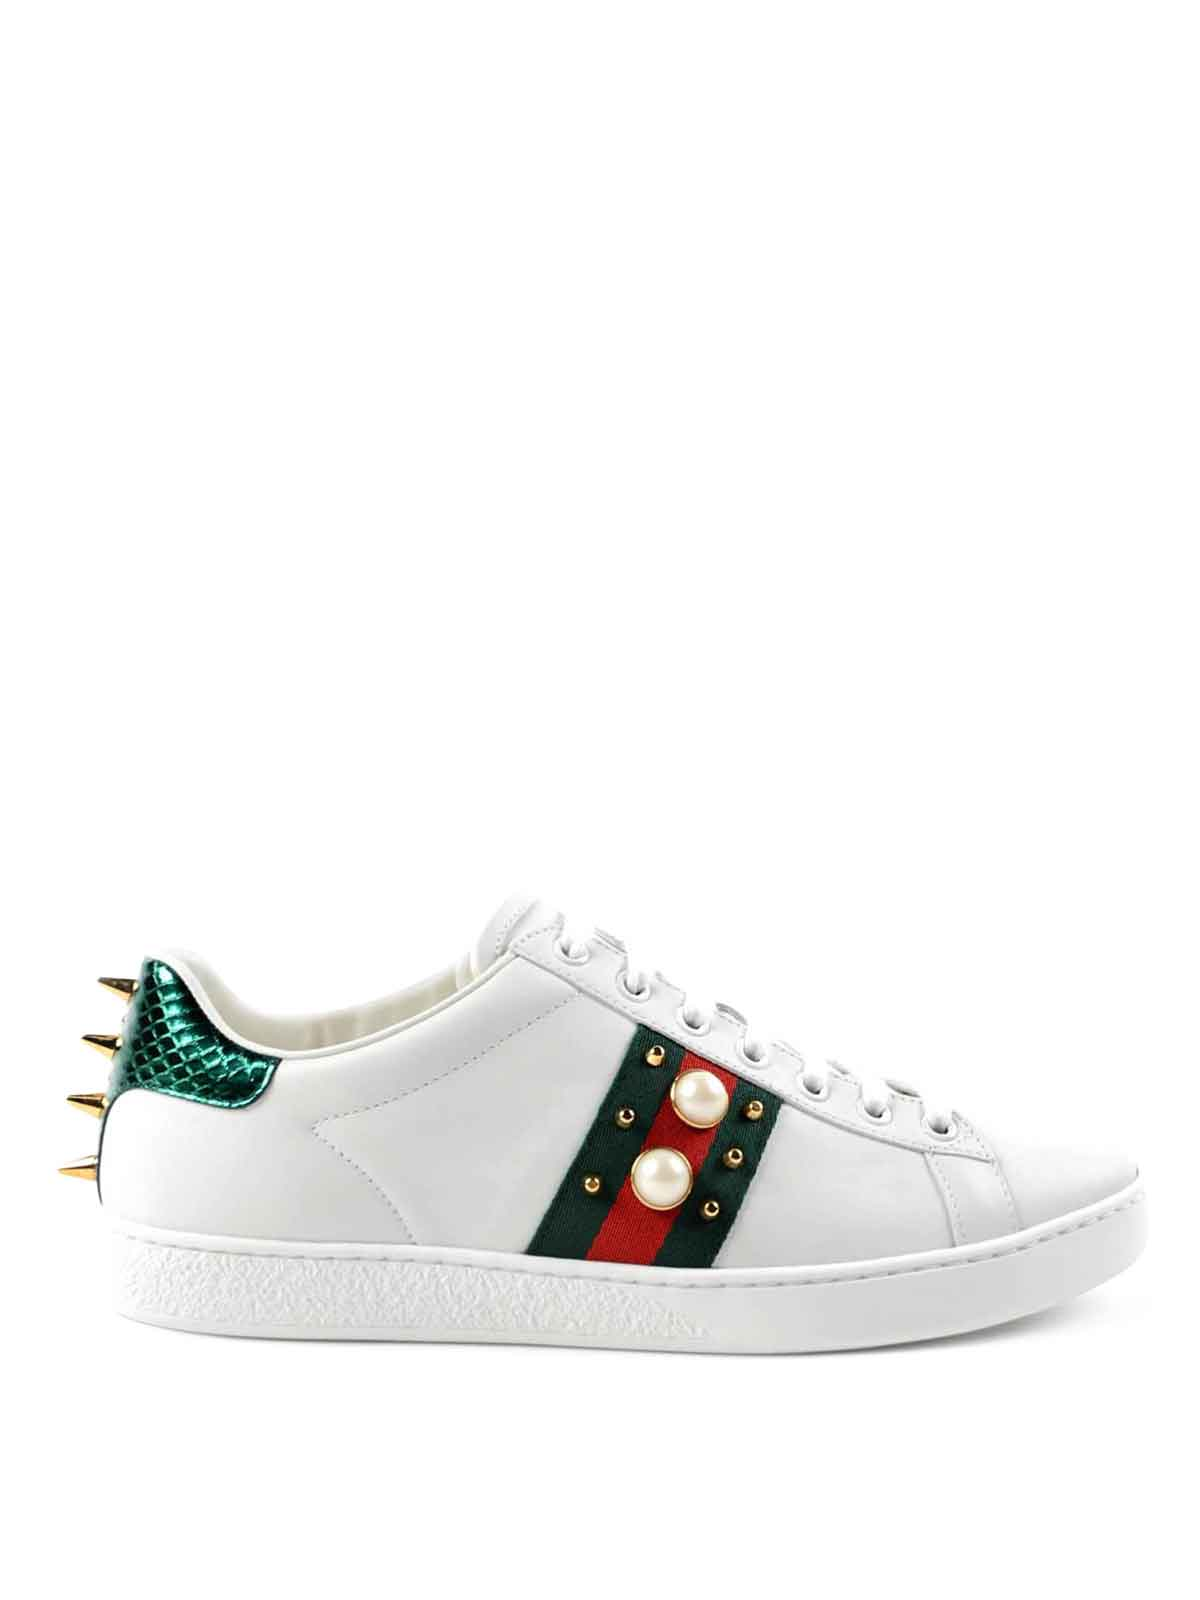 ace sneakers by gucci trainers ikrix. Black Bedroom Furniture Sets. Home Design Ideas